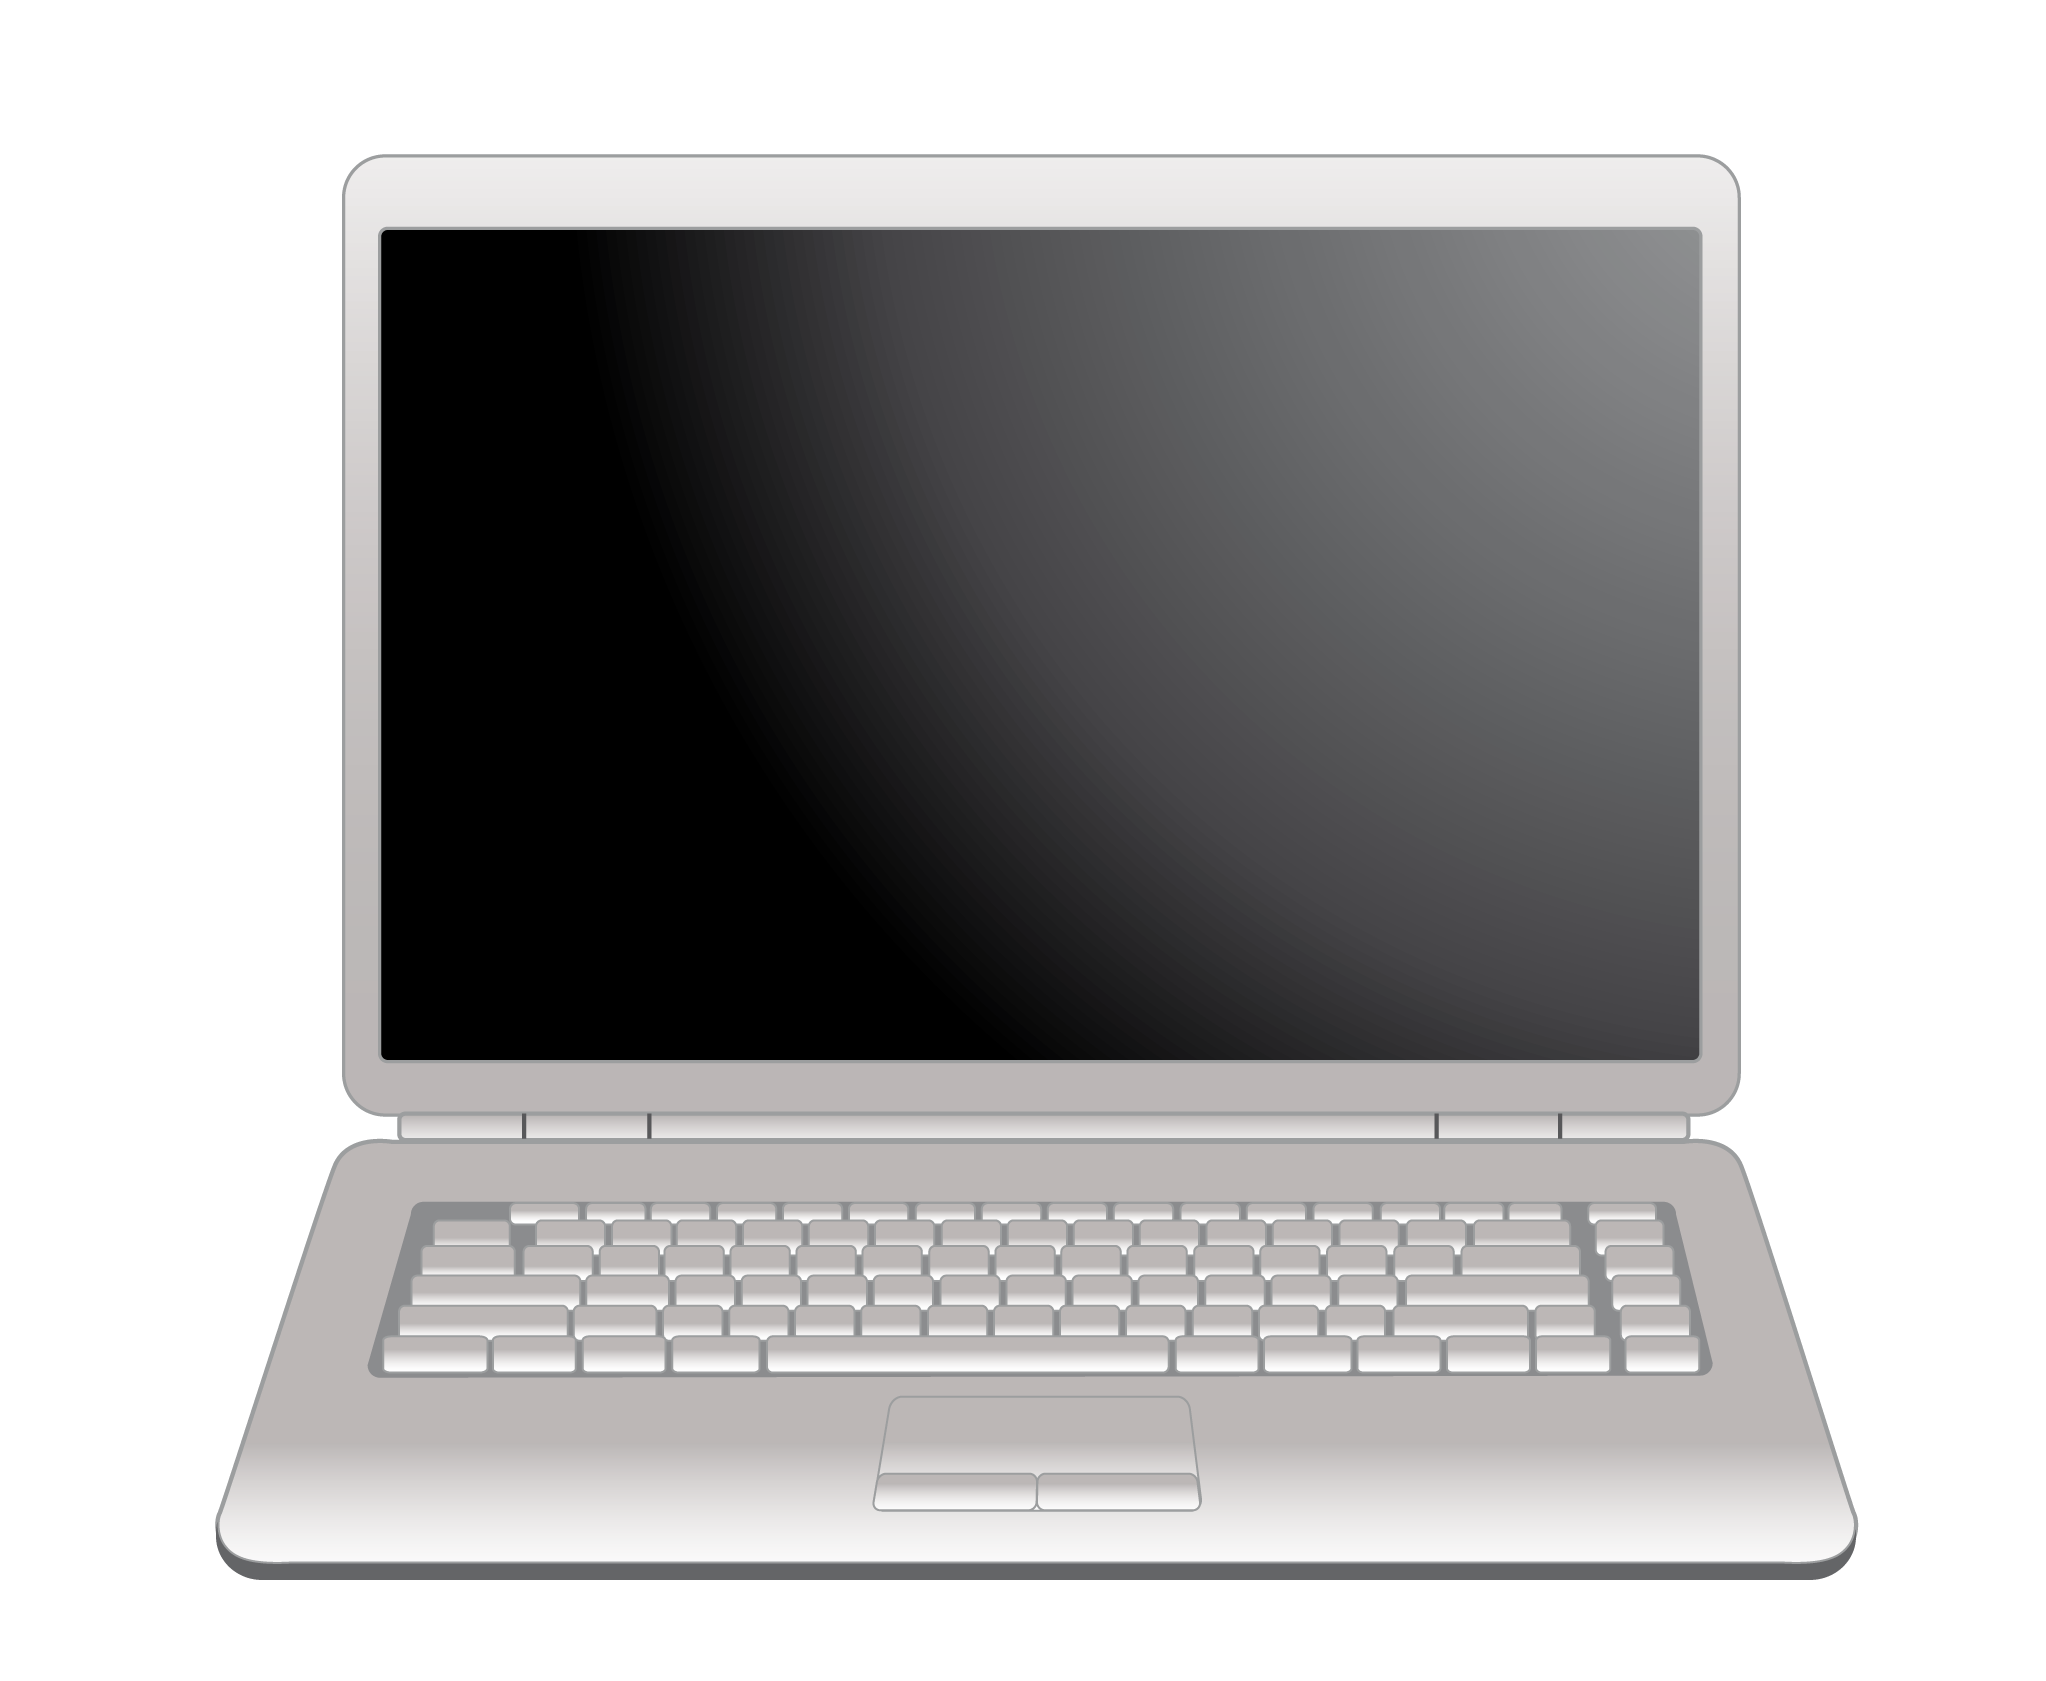 how to fix a black screen on my toshiba laptop